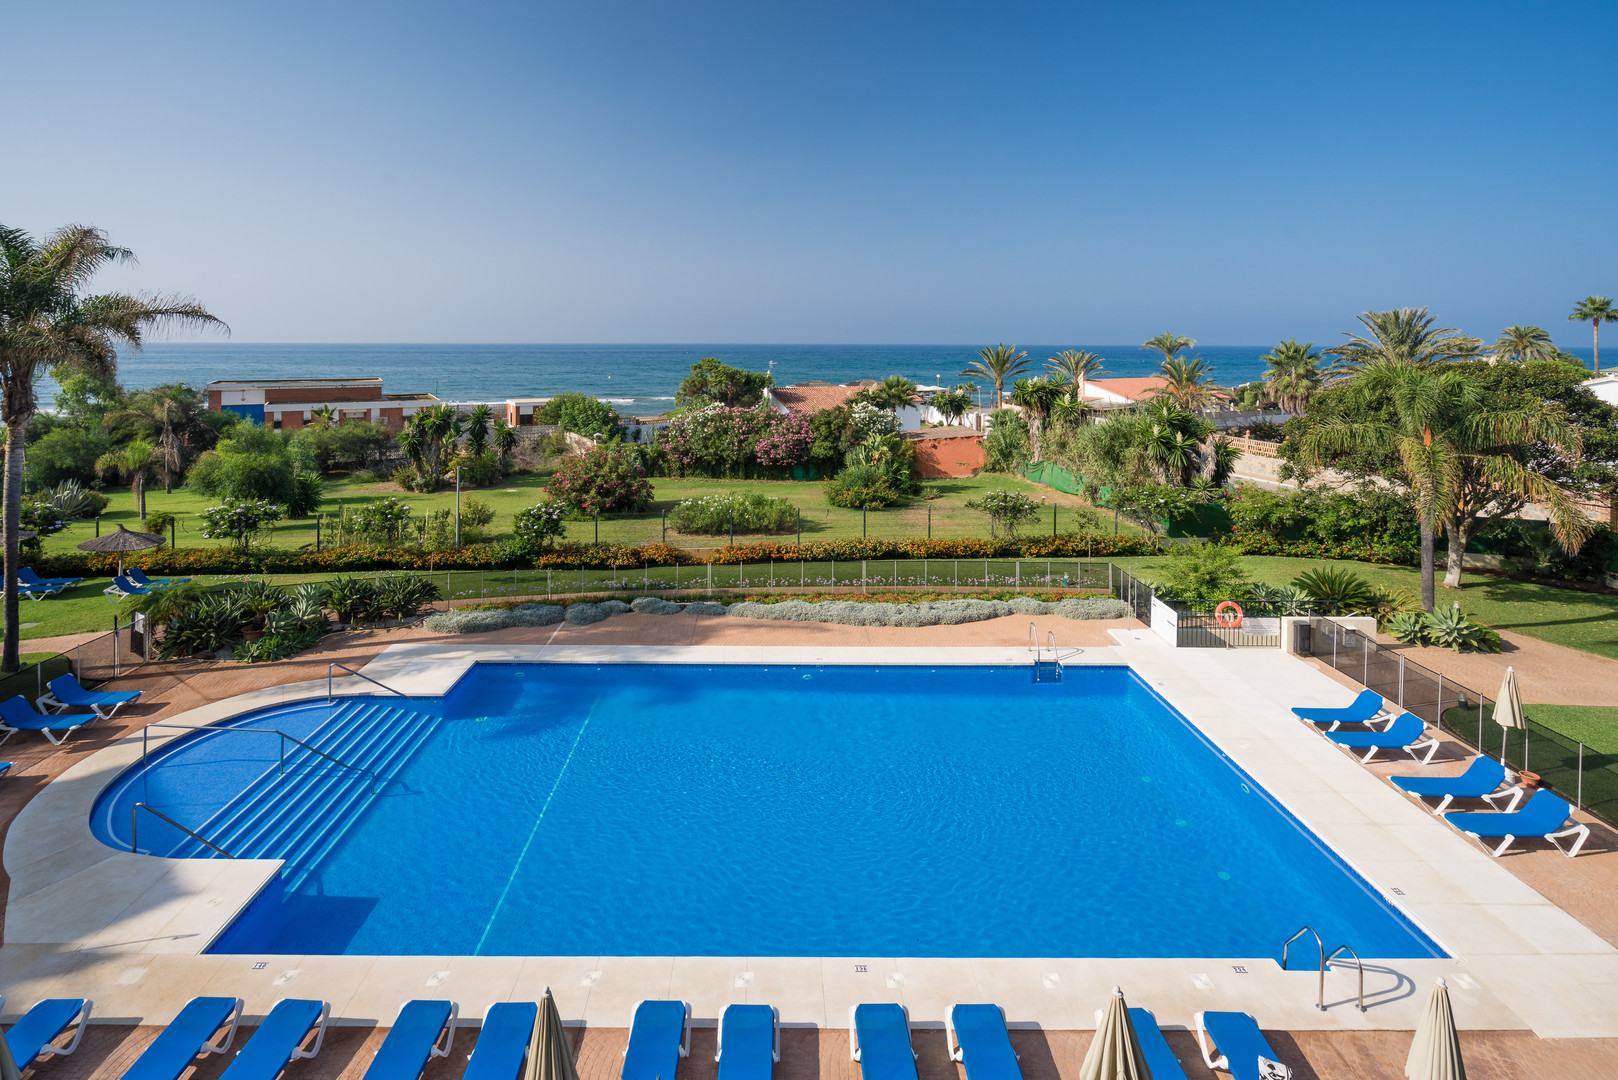 w90 apartment with pool on the beach in